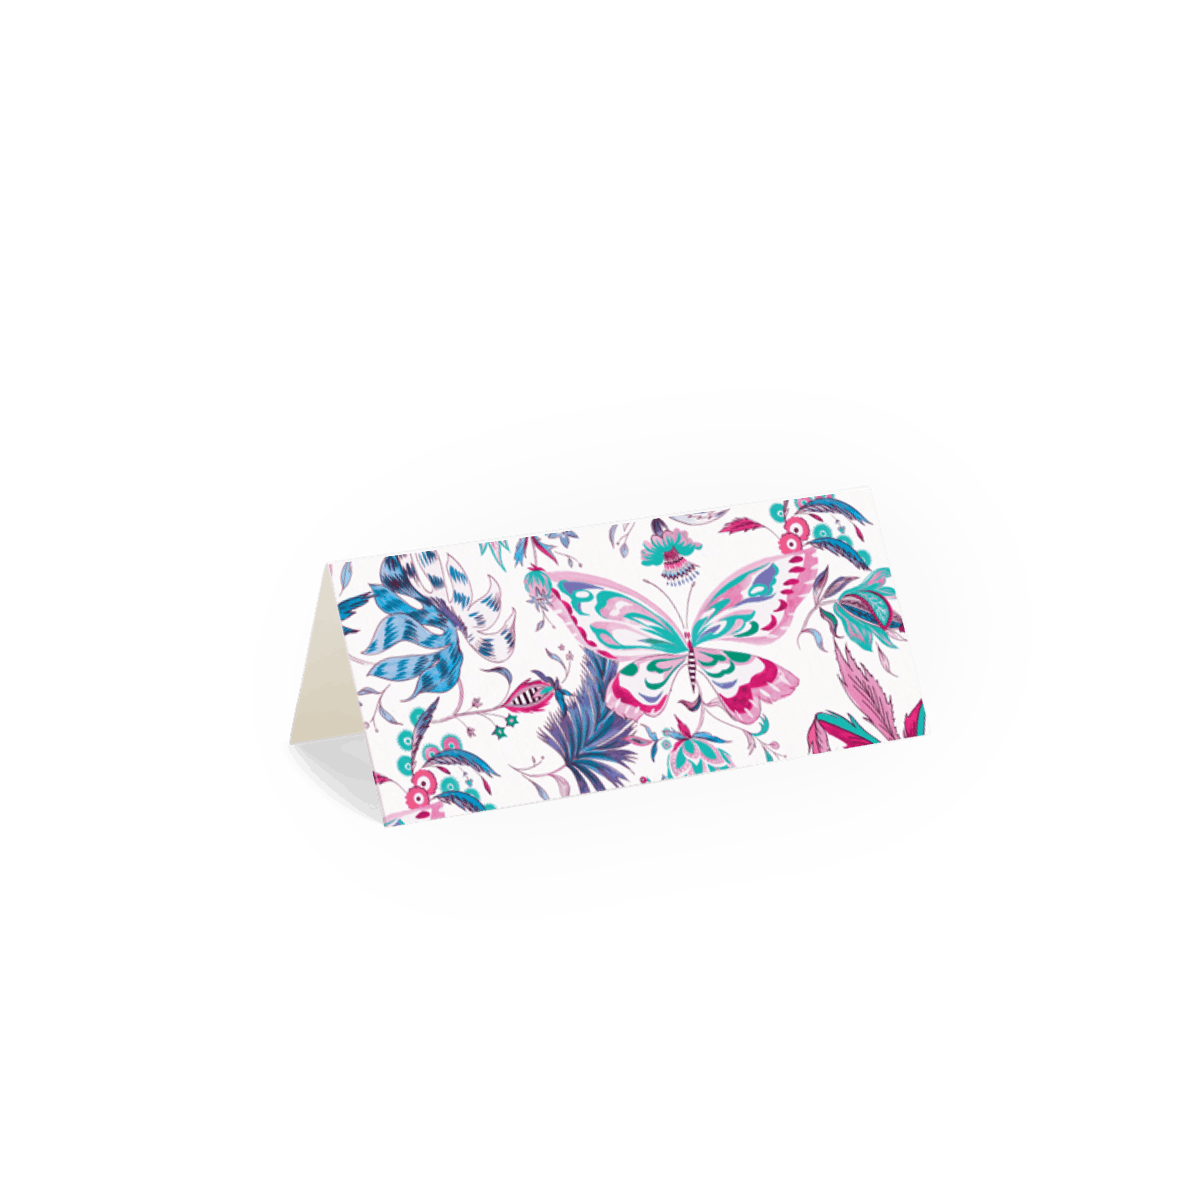 Https%3a%2f%2fwww.papier.com%2fproduct image%2f82269%2f15%2fpineapple paisley pink 19884 arriere 1562077212.png?ixlib=rb 1.1